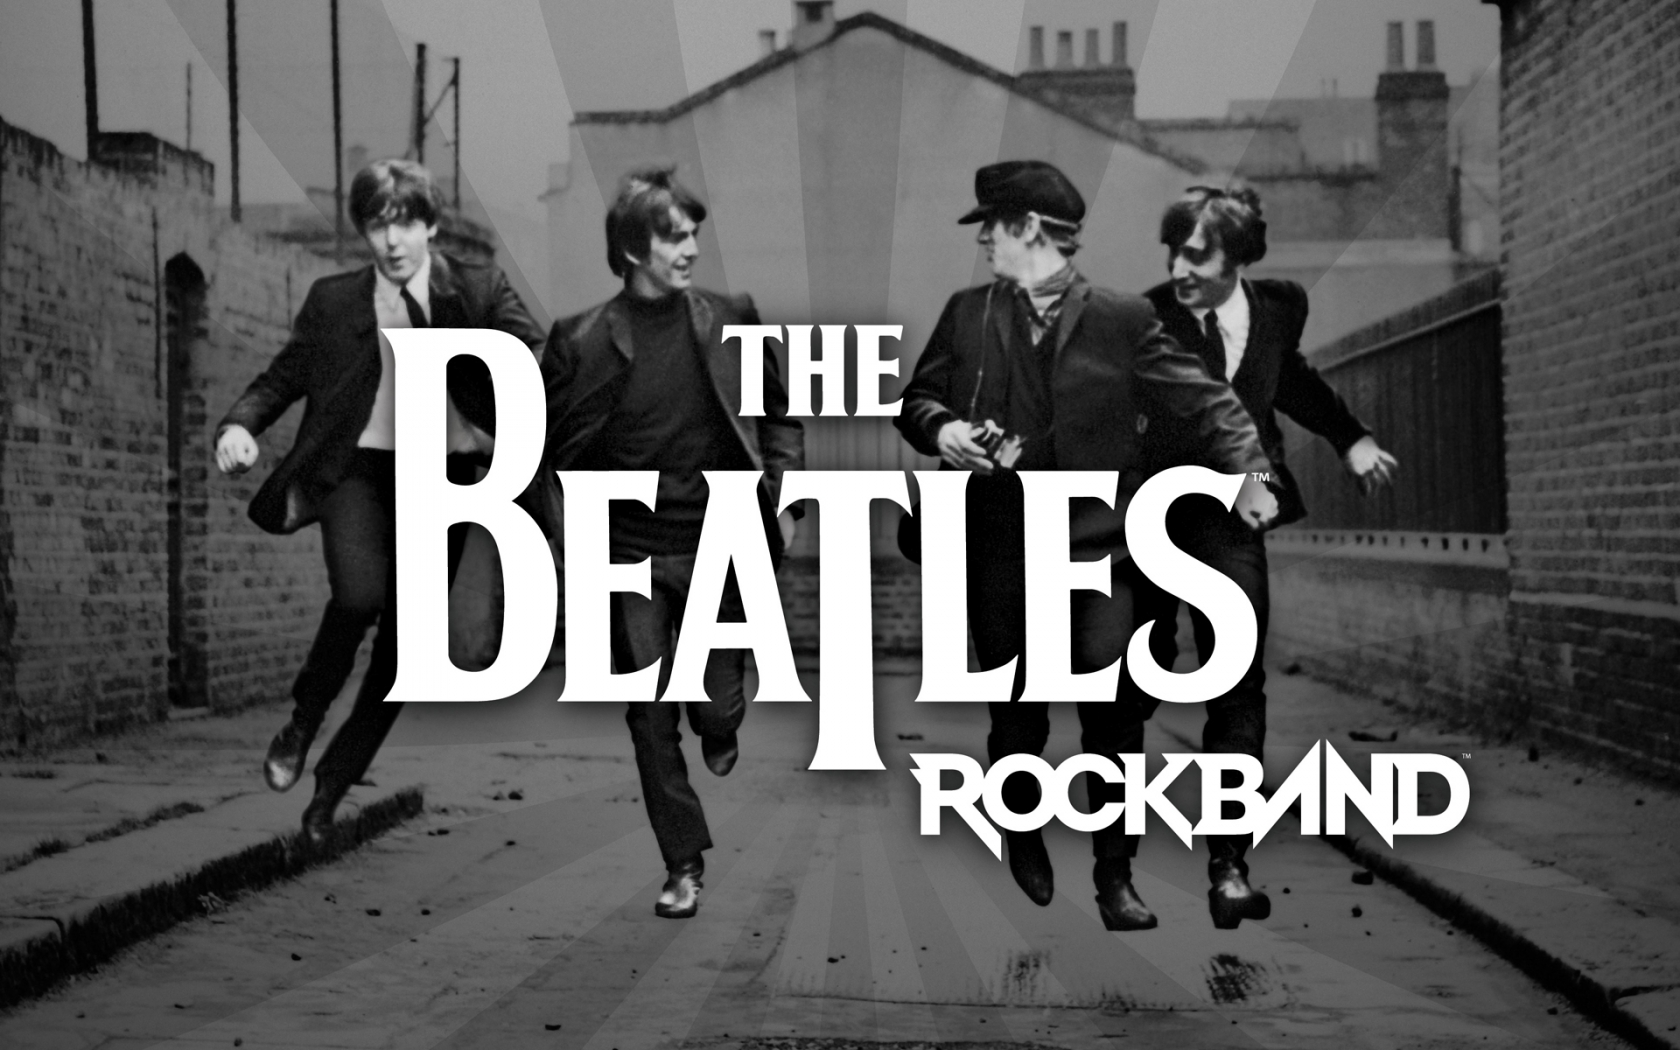 The Beatles Rock Band - 1680x1050